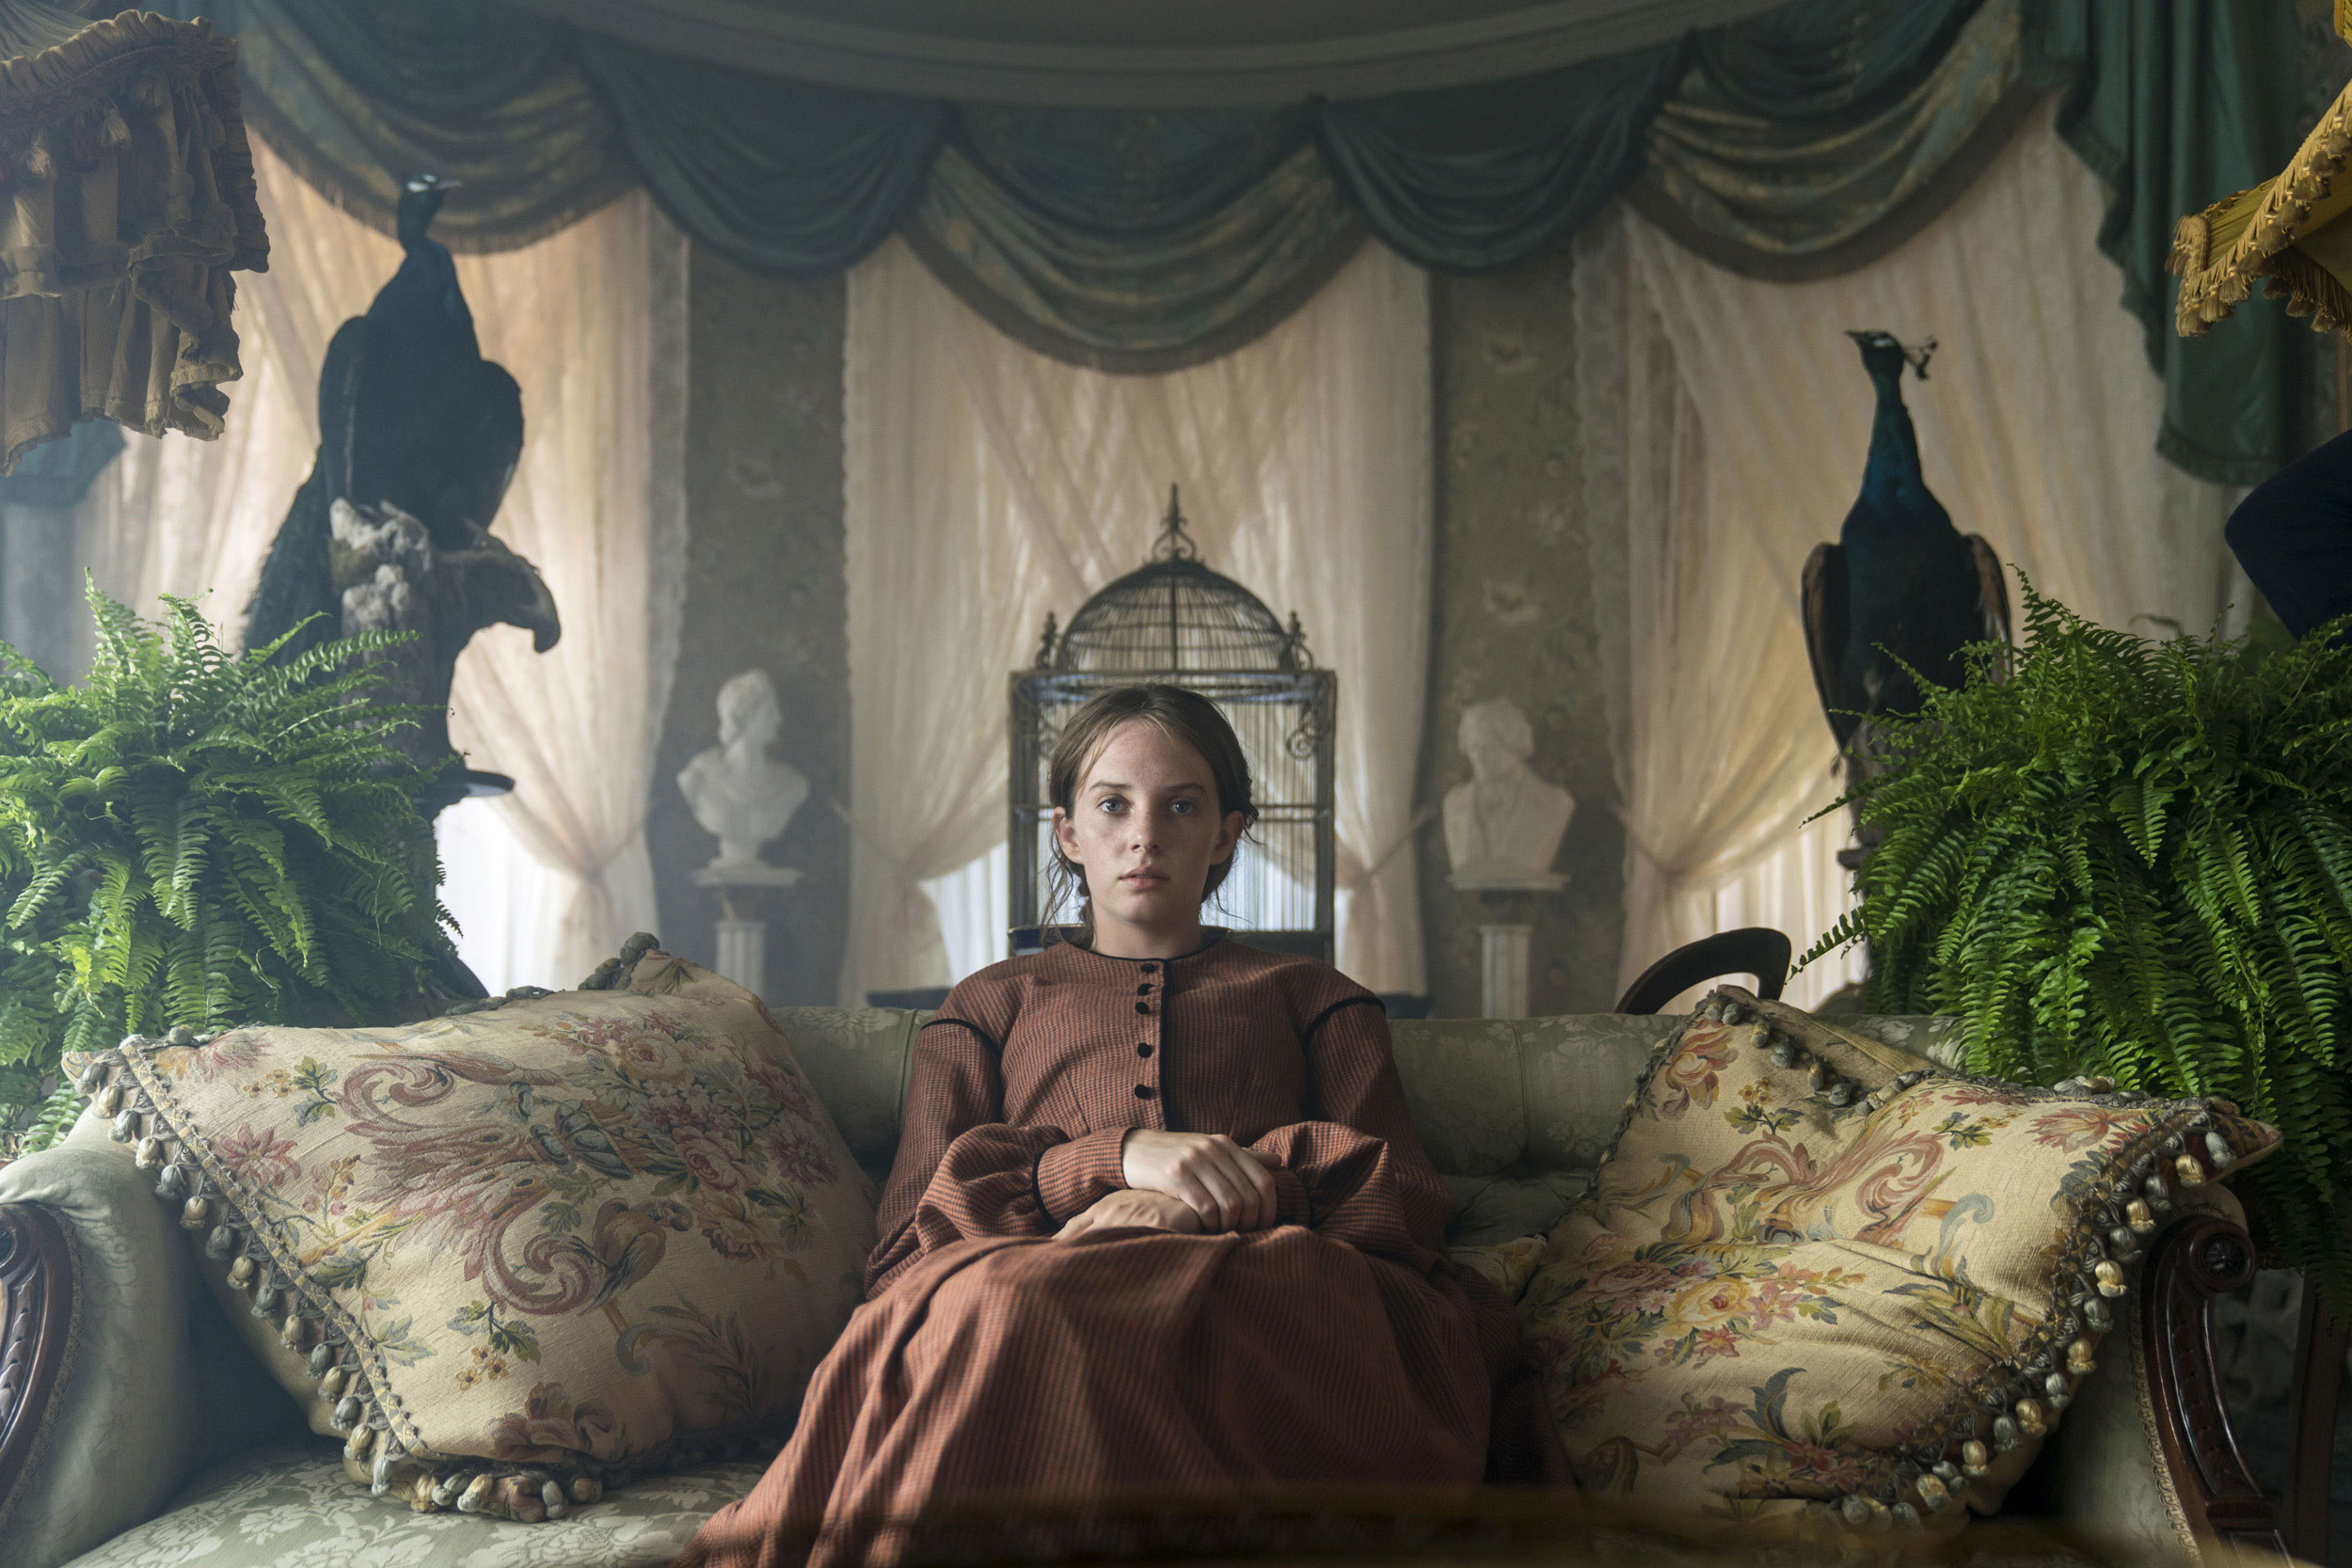 LITTLE WOMEN: Maya Hawke